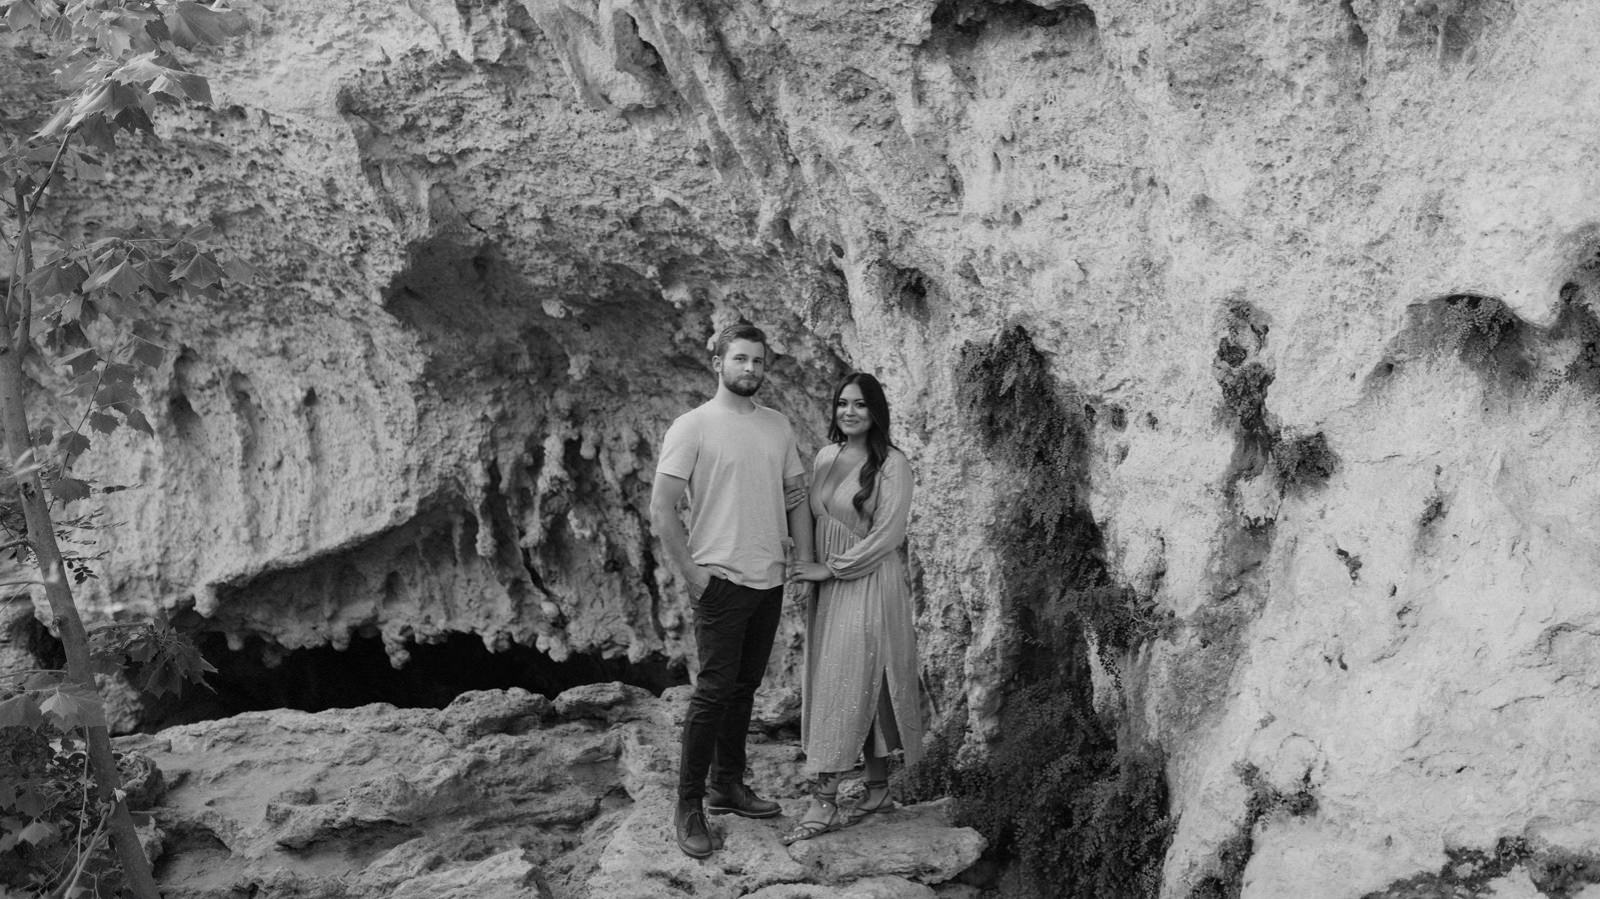 Romantic engagement shoot in a rock canyon by the Pedernales River in the Texas hill country